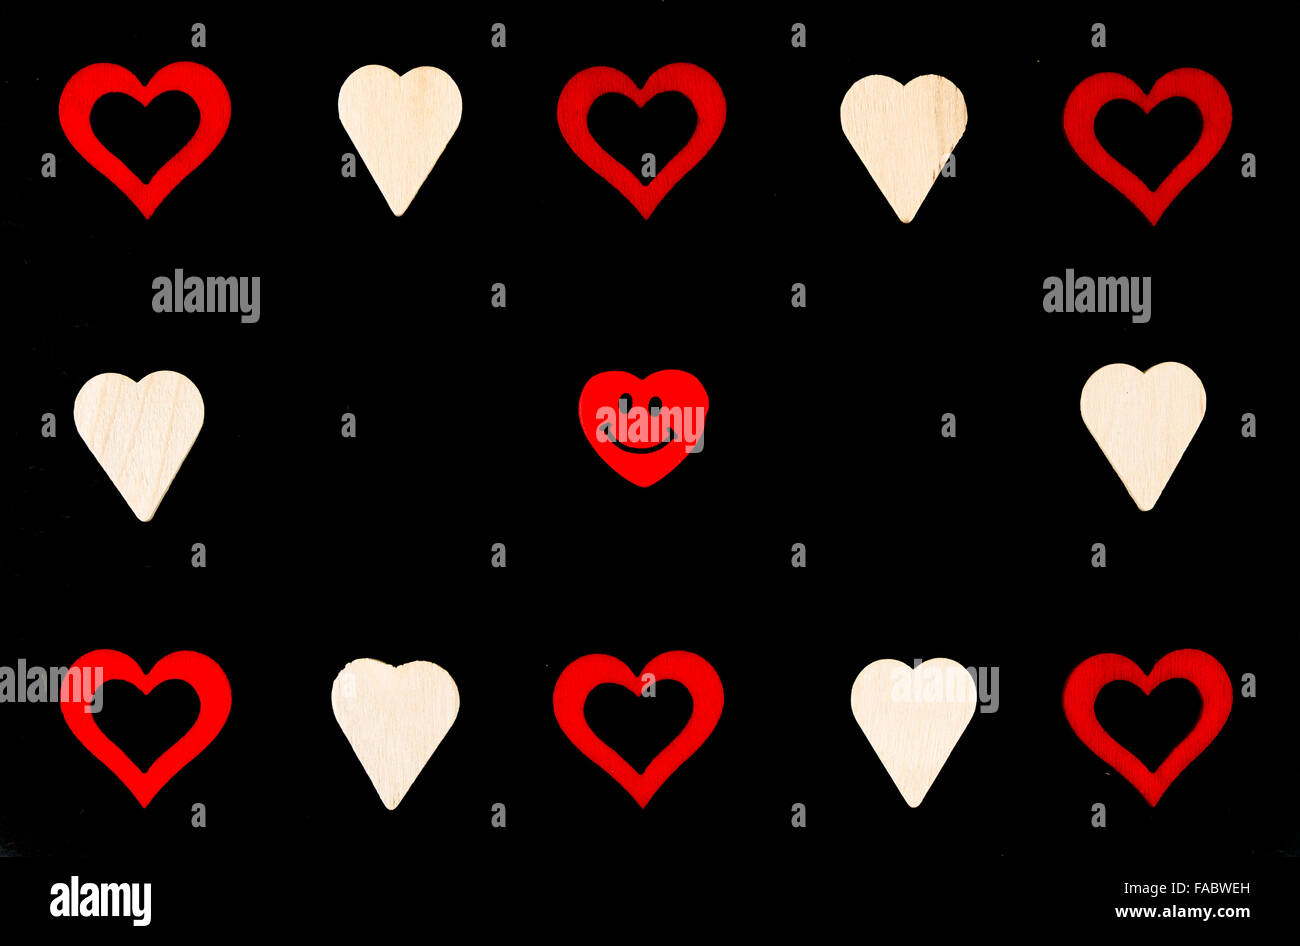 Heart Shapes Symbols And Smiling Emoticon Isolated On Black Stock